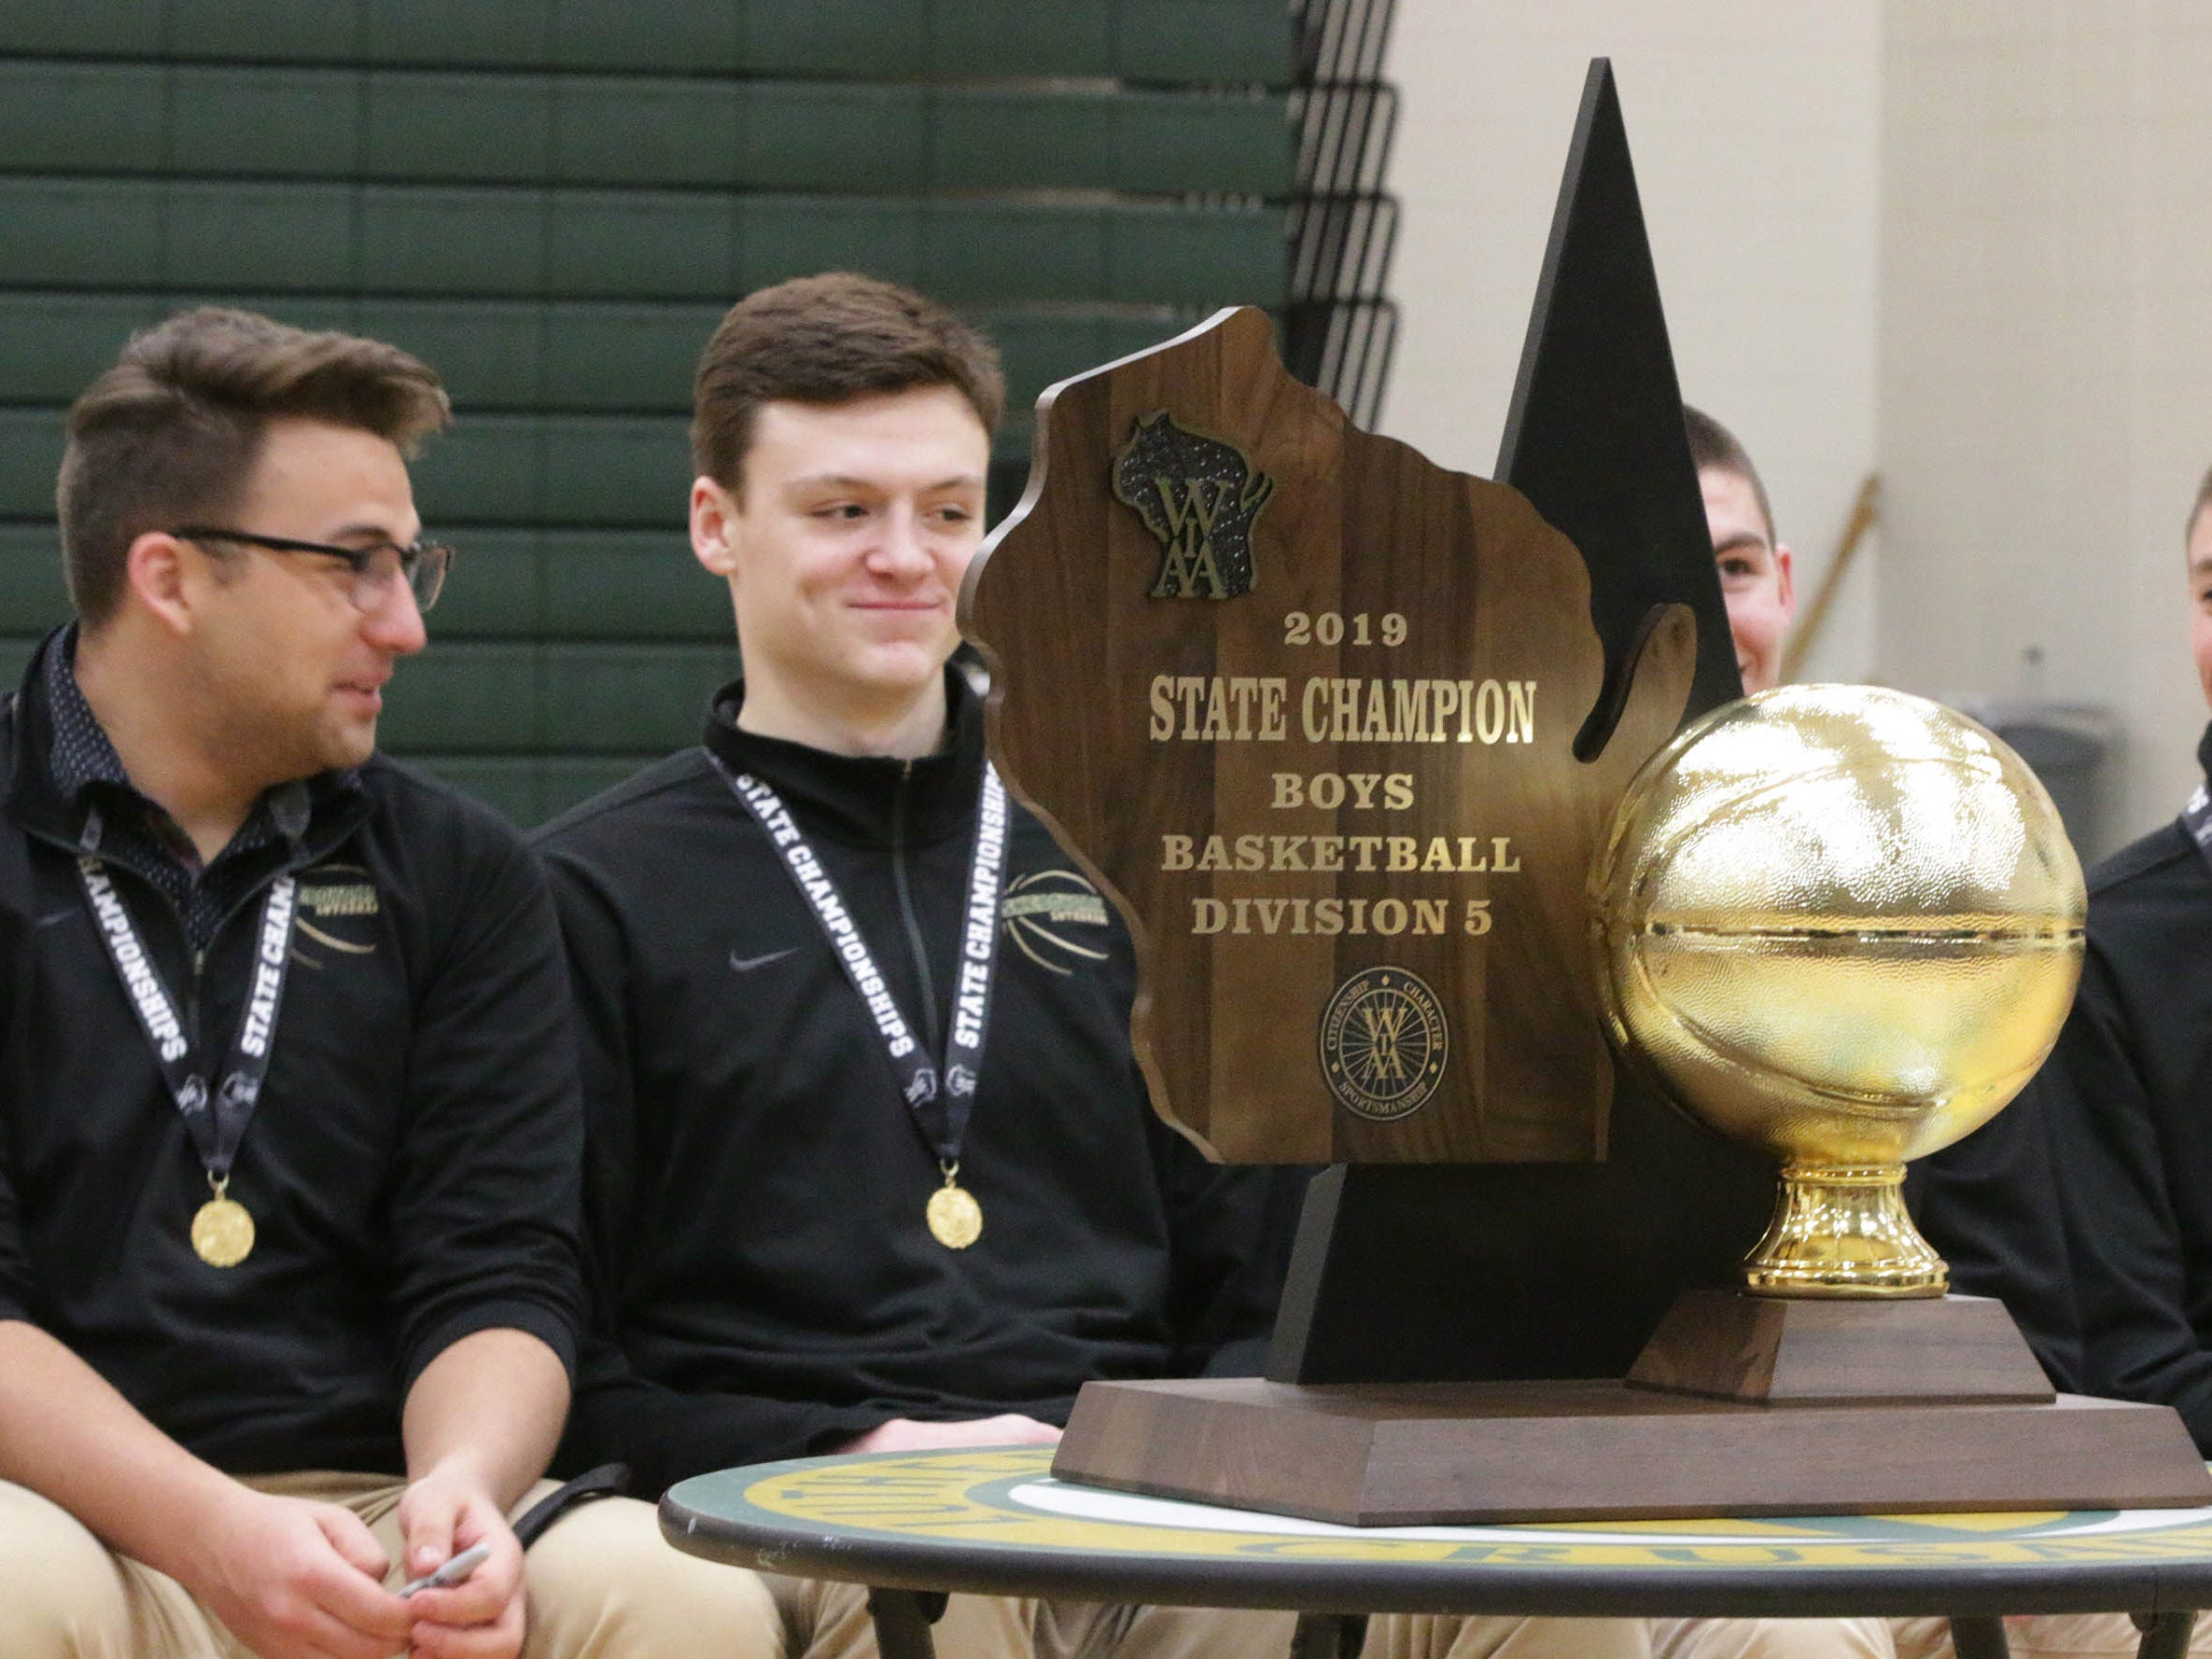 Sheboygan Lutheran players smile during the rally honoring the team for becoming the 2019 WIAA Div. 5 State Champions, Sunday, March 17, 2019, in Sheboygan, Wis.